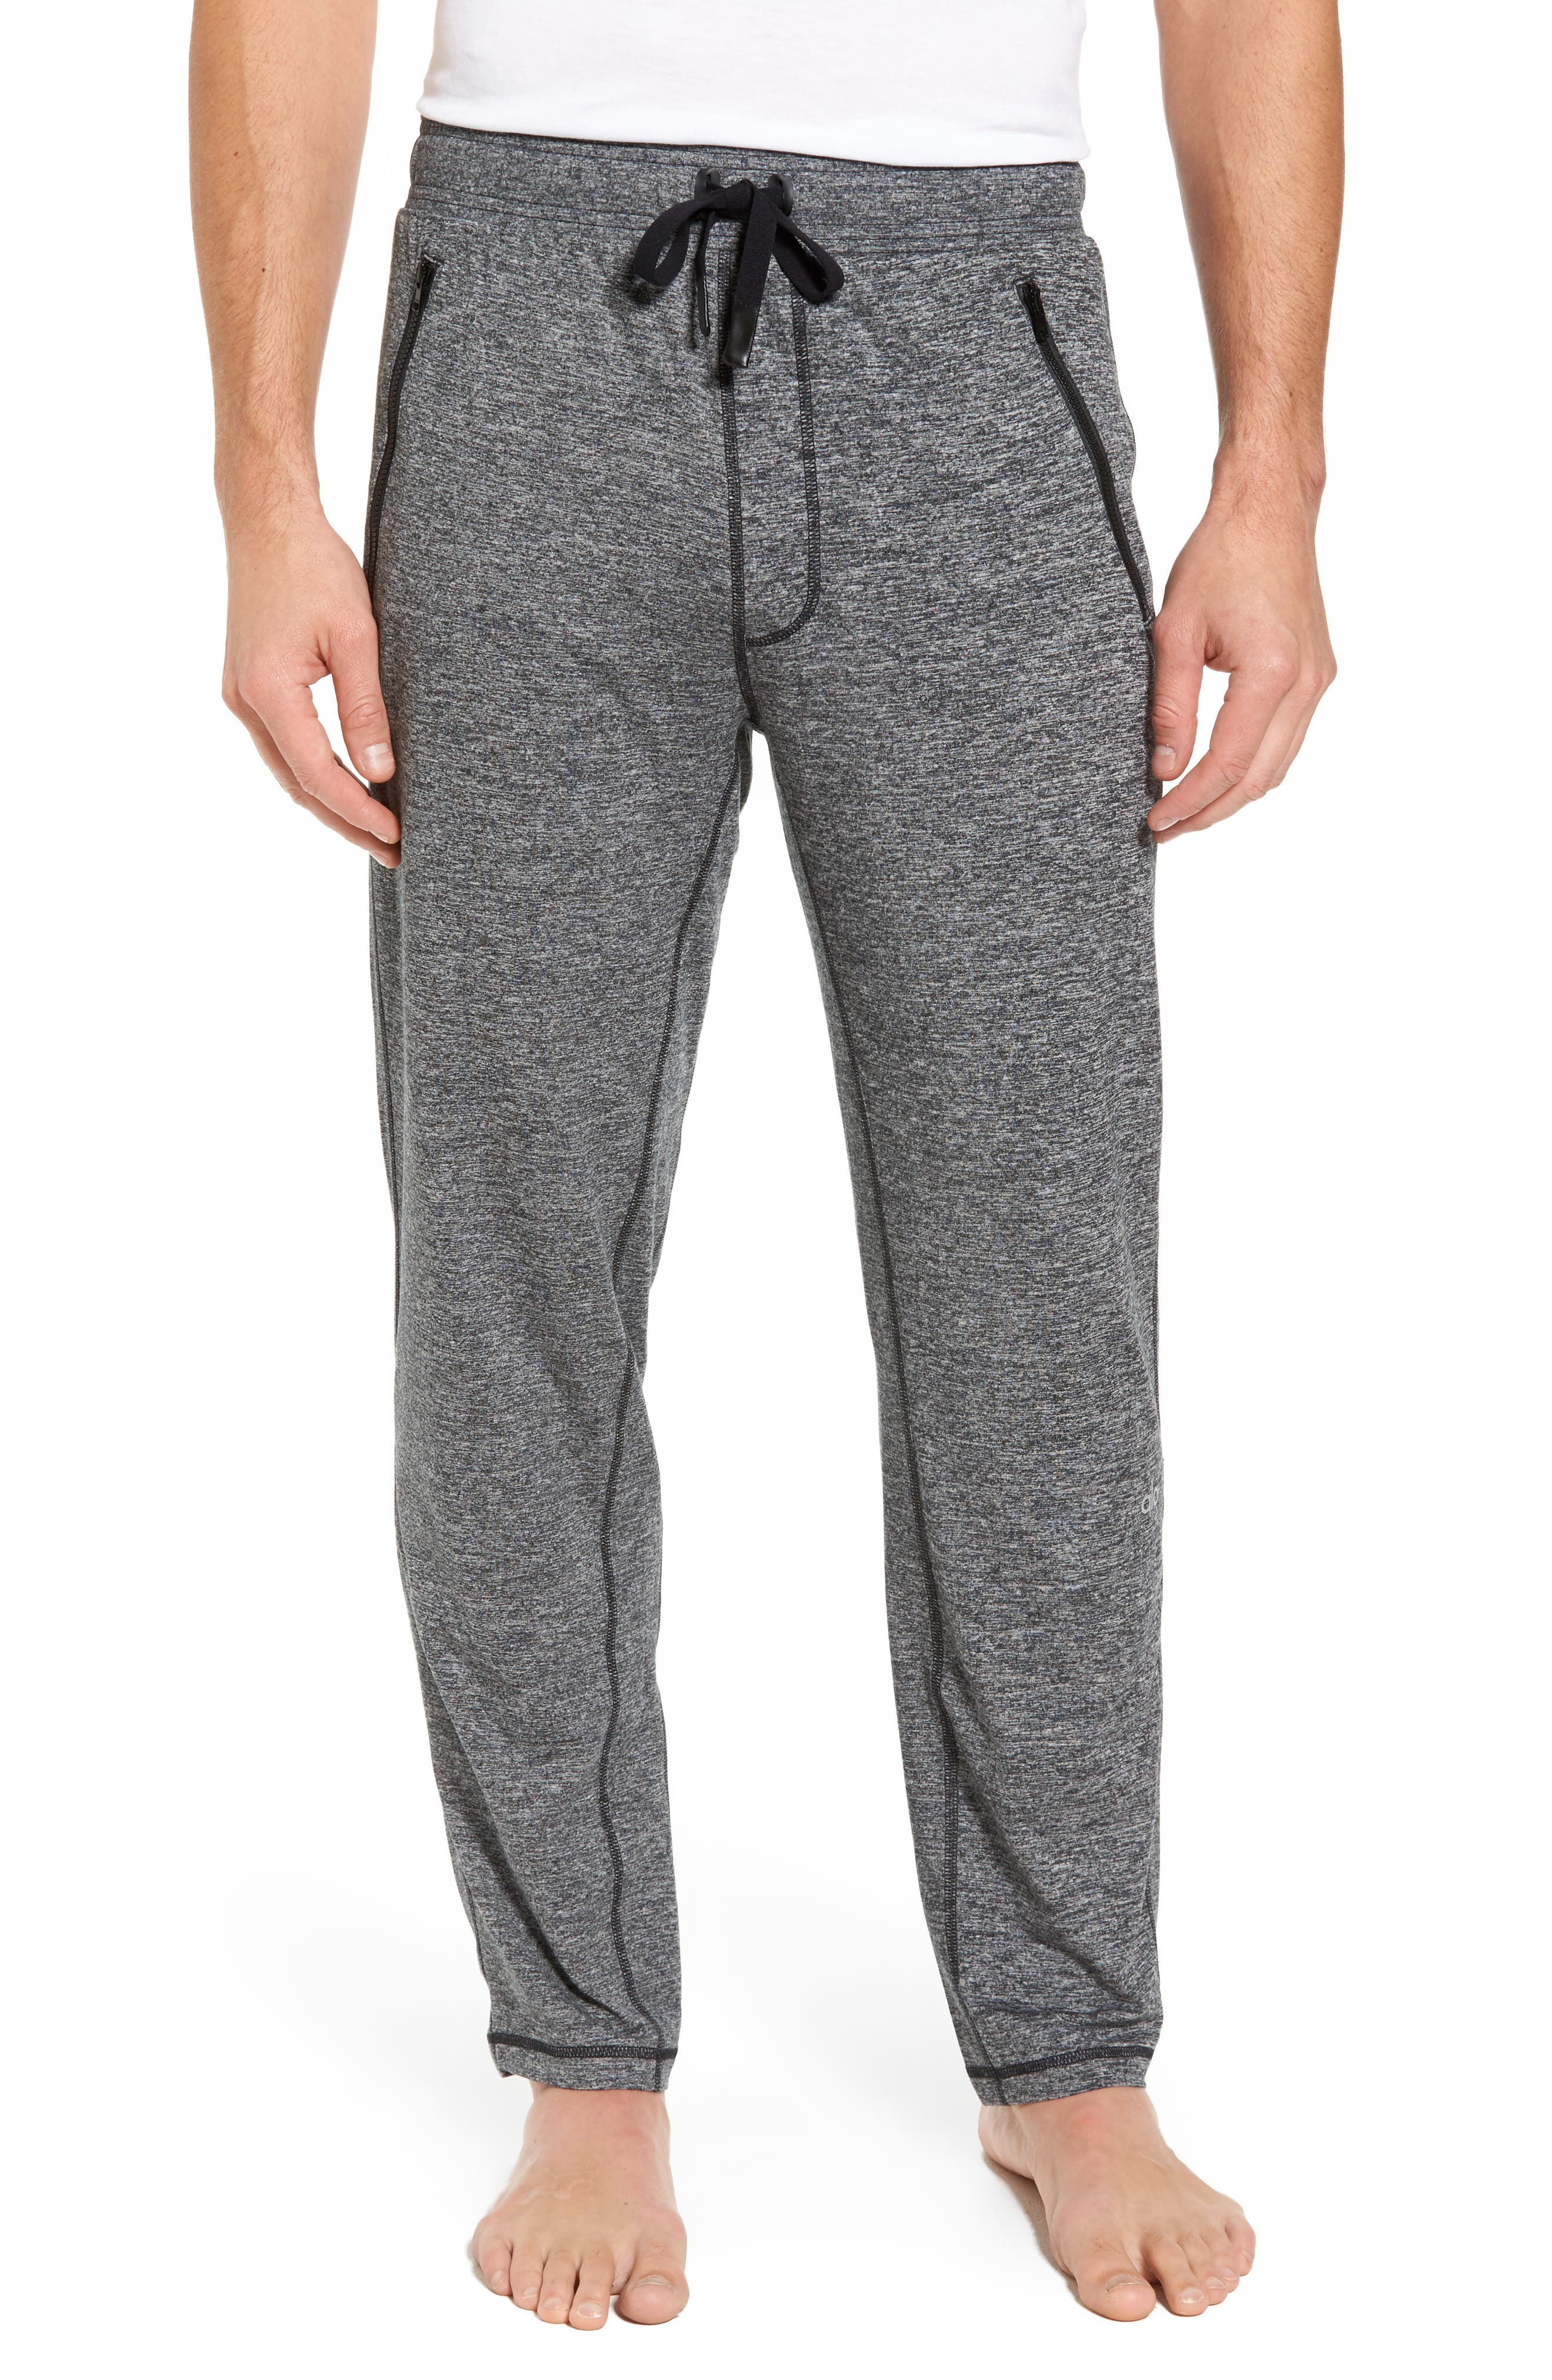 Renew Relaxed Lounge Pants,                         Main,                         color, Grey Marl